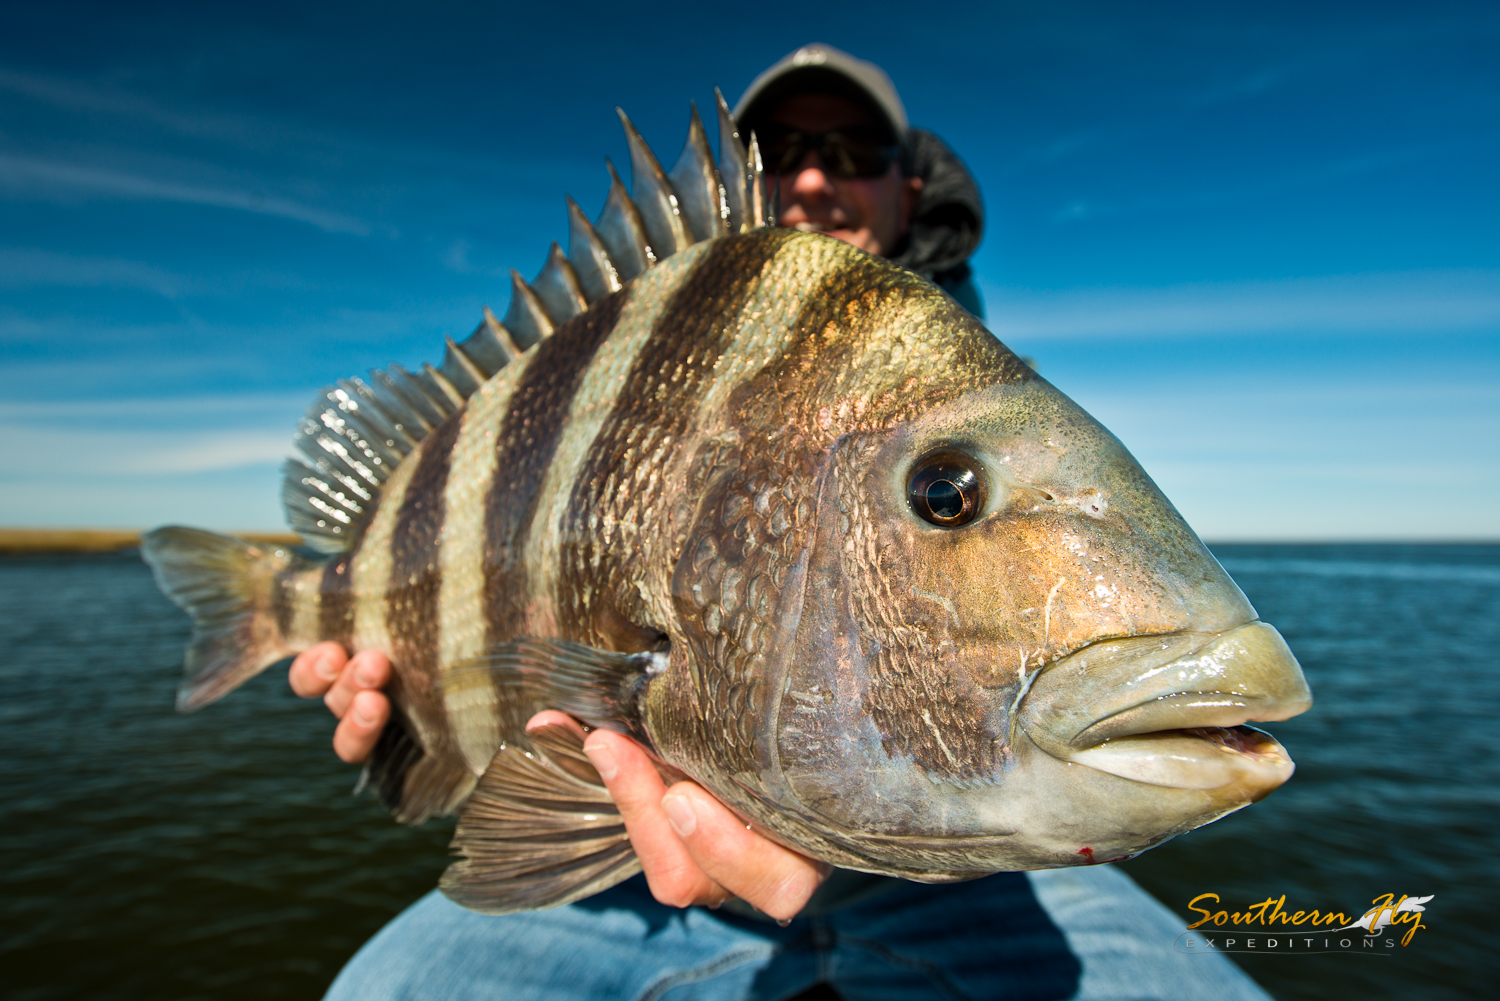 Monster Sheepshead Spin Fishing with Southern Fly Expeditions